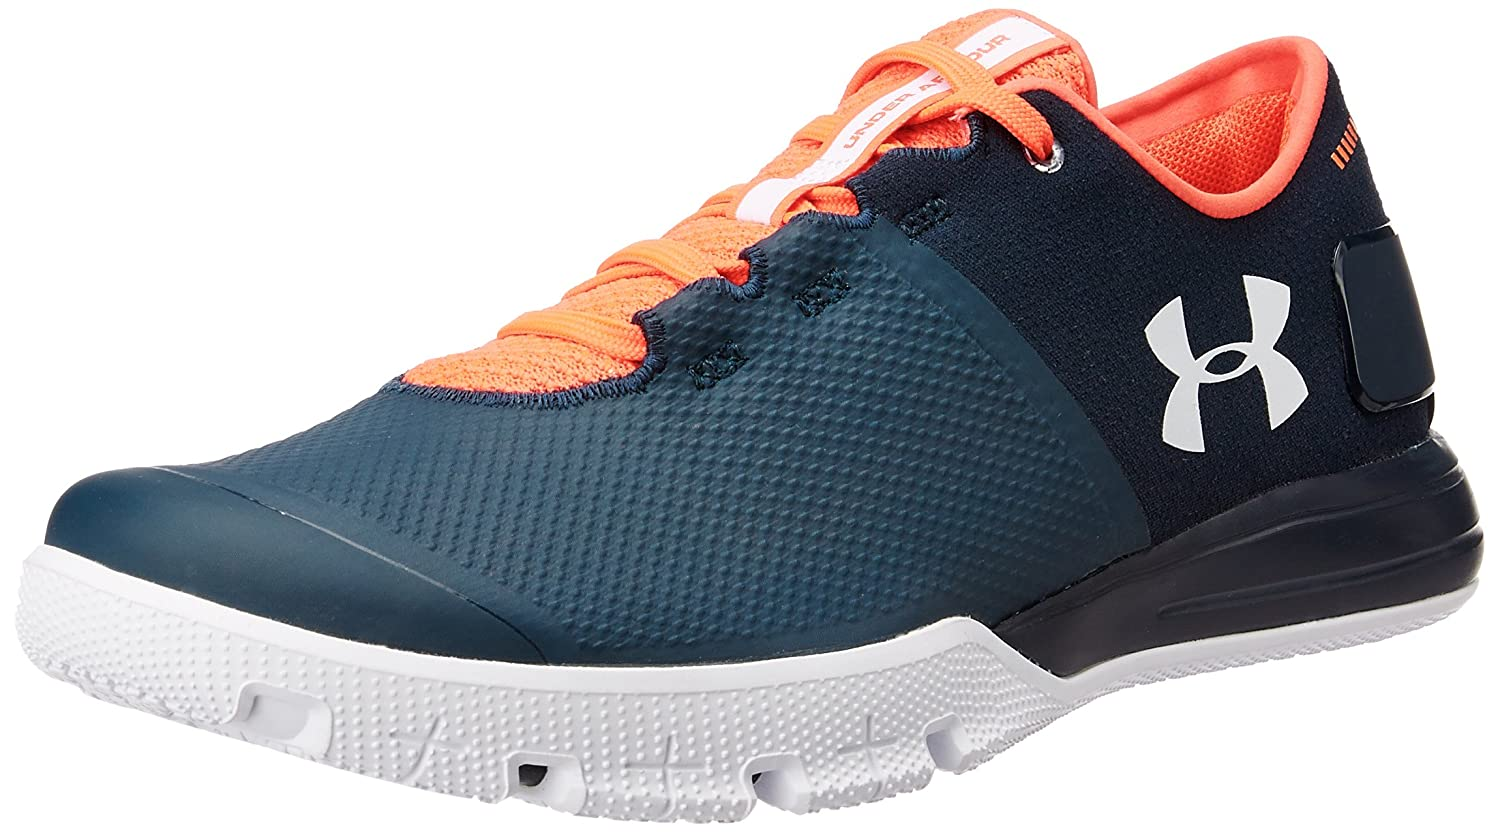 Under Armour Men's UA Charged Ultimate TR 2.0 Blue Drift, Phoenix Fire and  White Multisport Training Shoes - 9 UK/India (44 EU): Buy Online at Low  Prices in ...